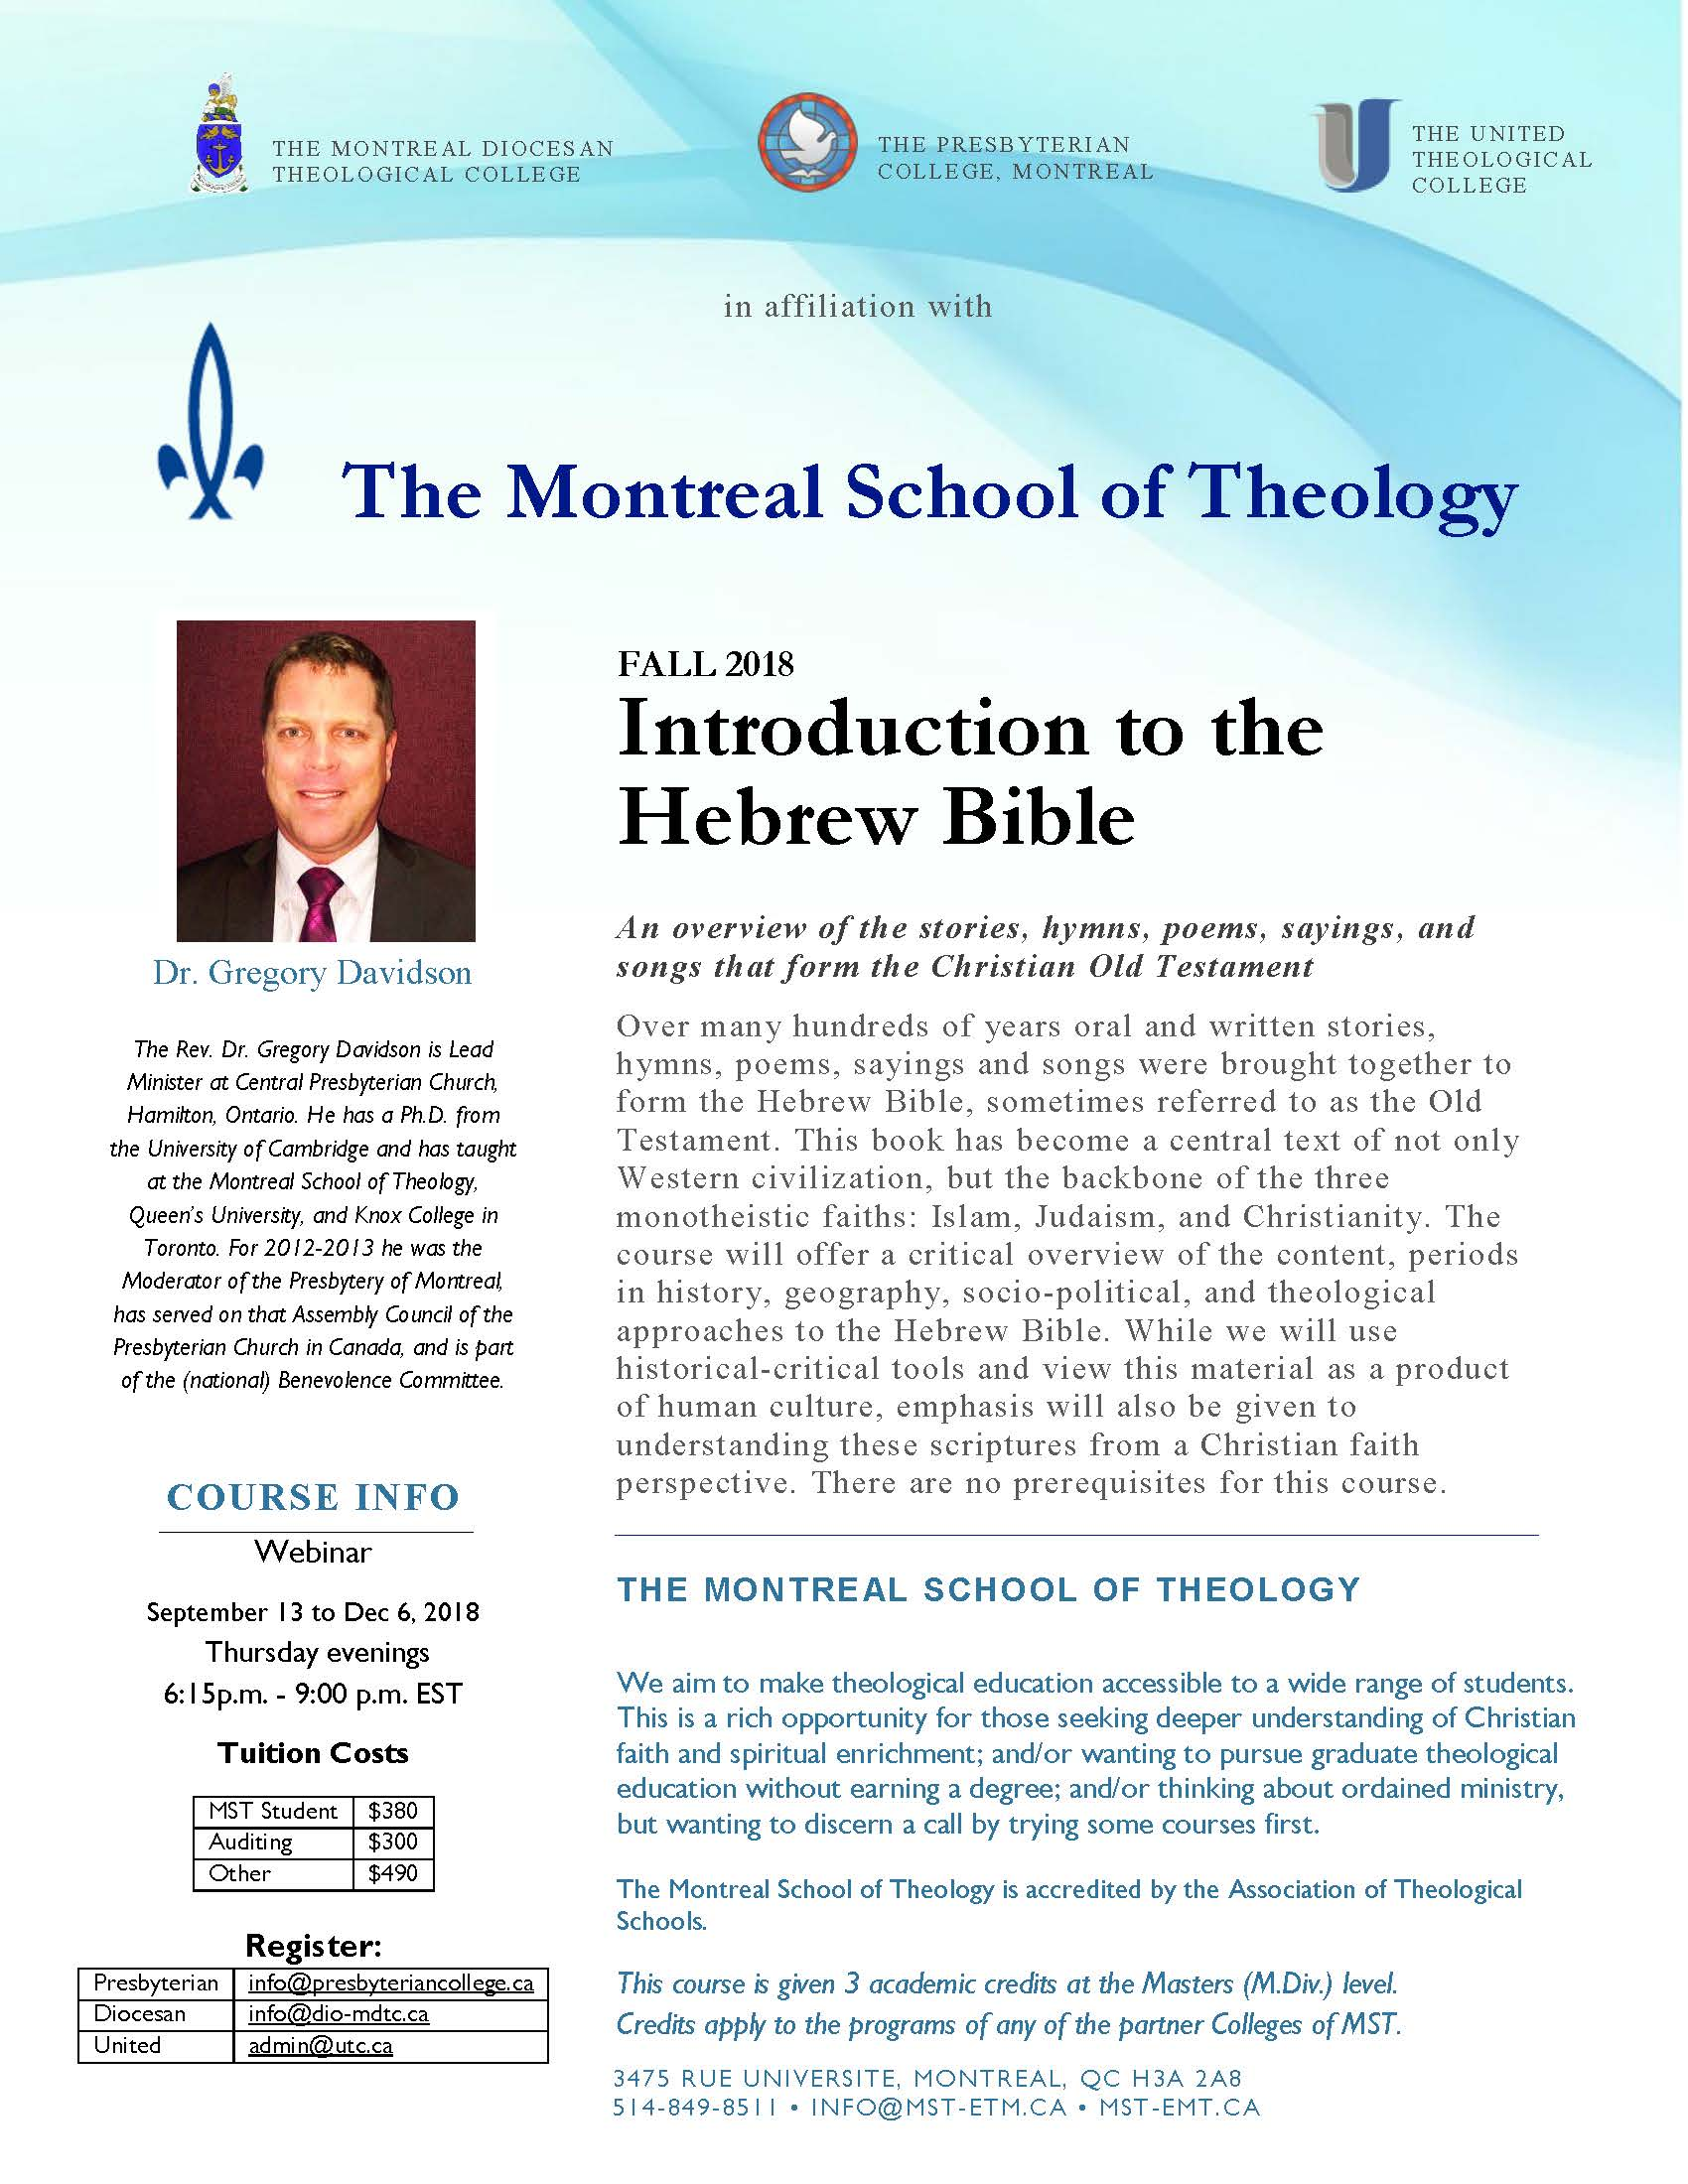 Fall 2018 Online Course: Introduction to the Hebrew Bible